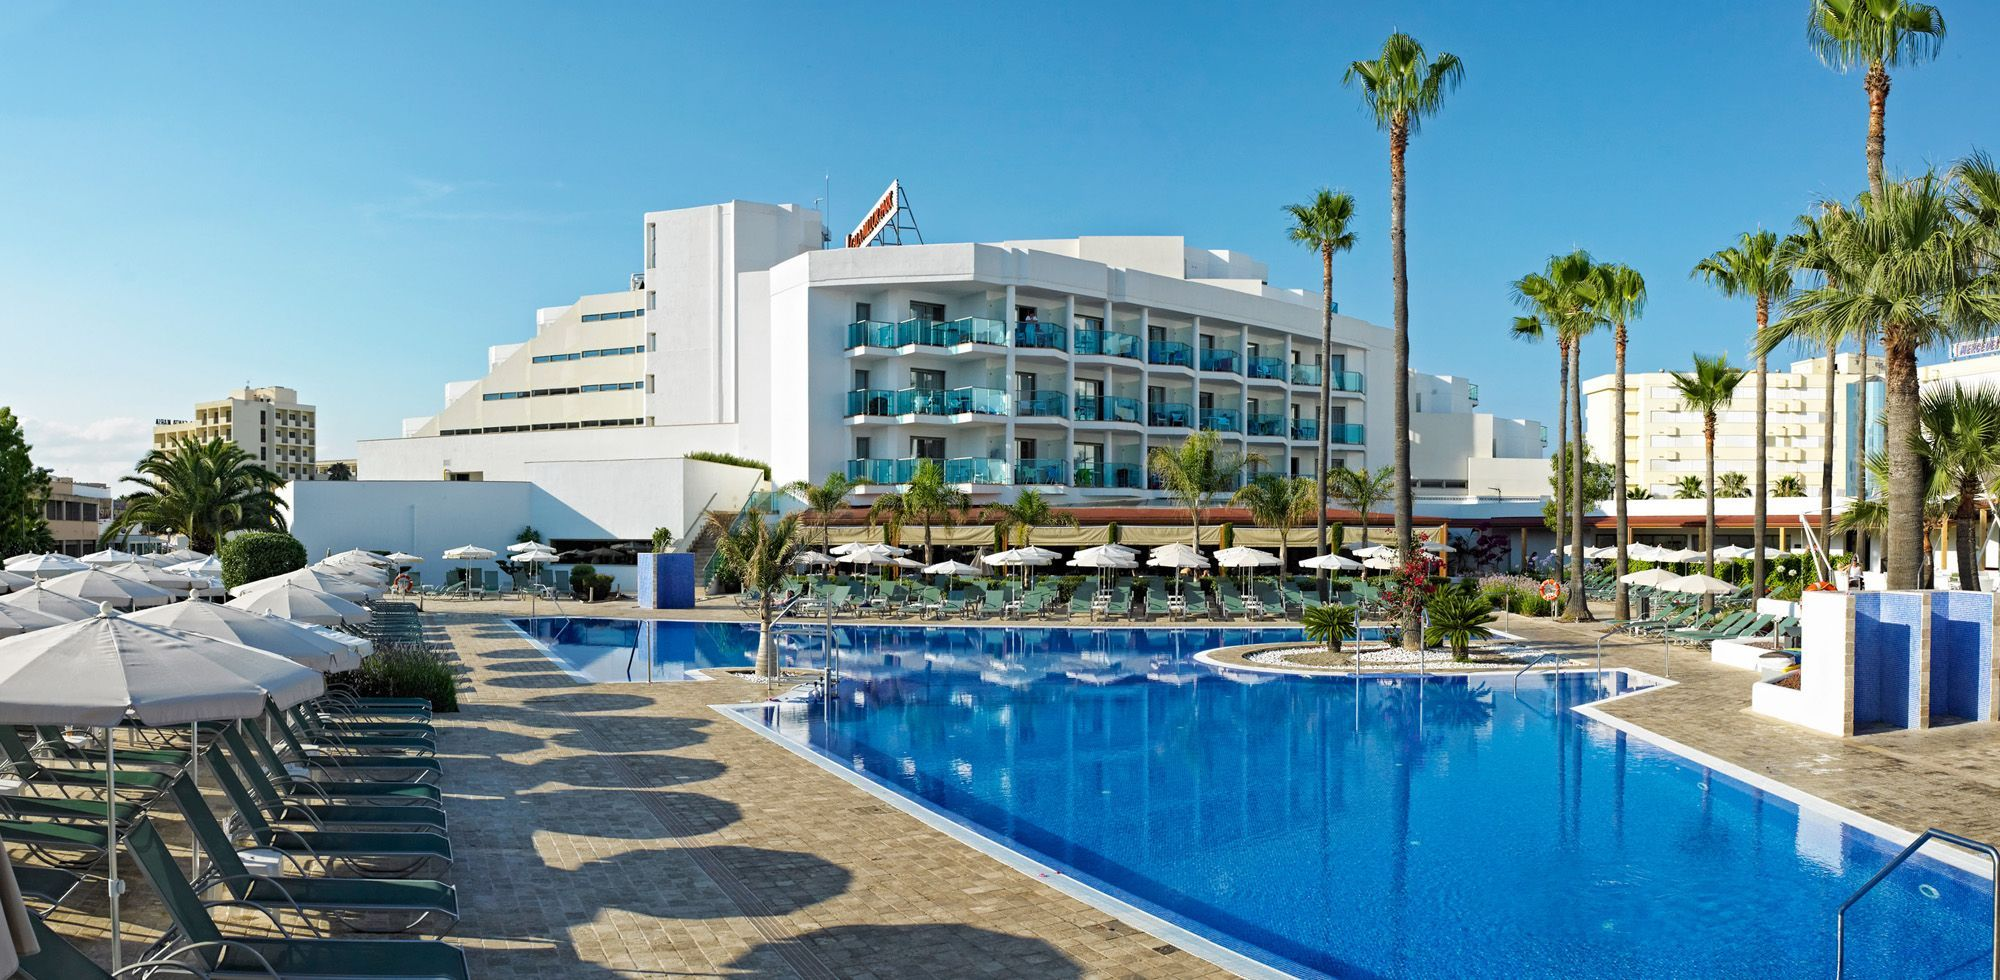 Best Deal On Hotel Booking